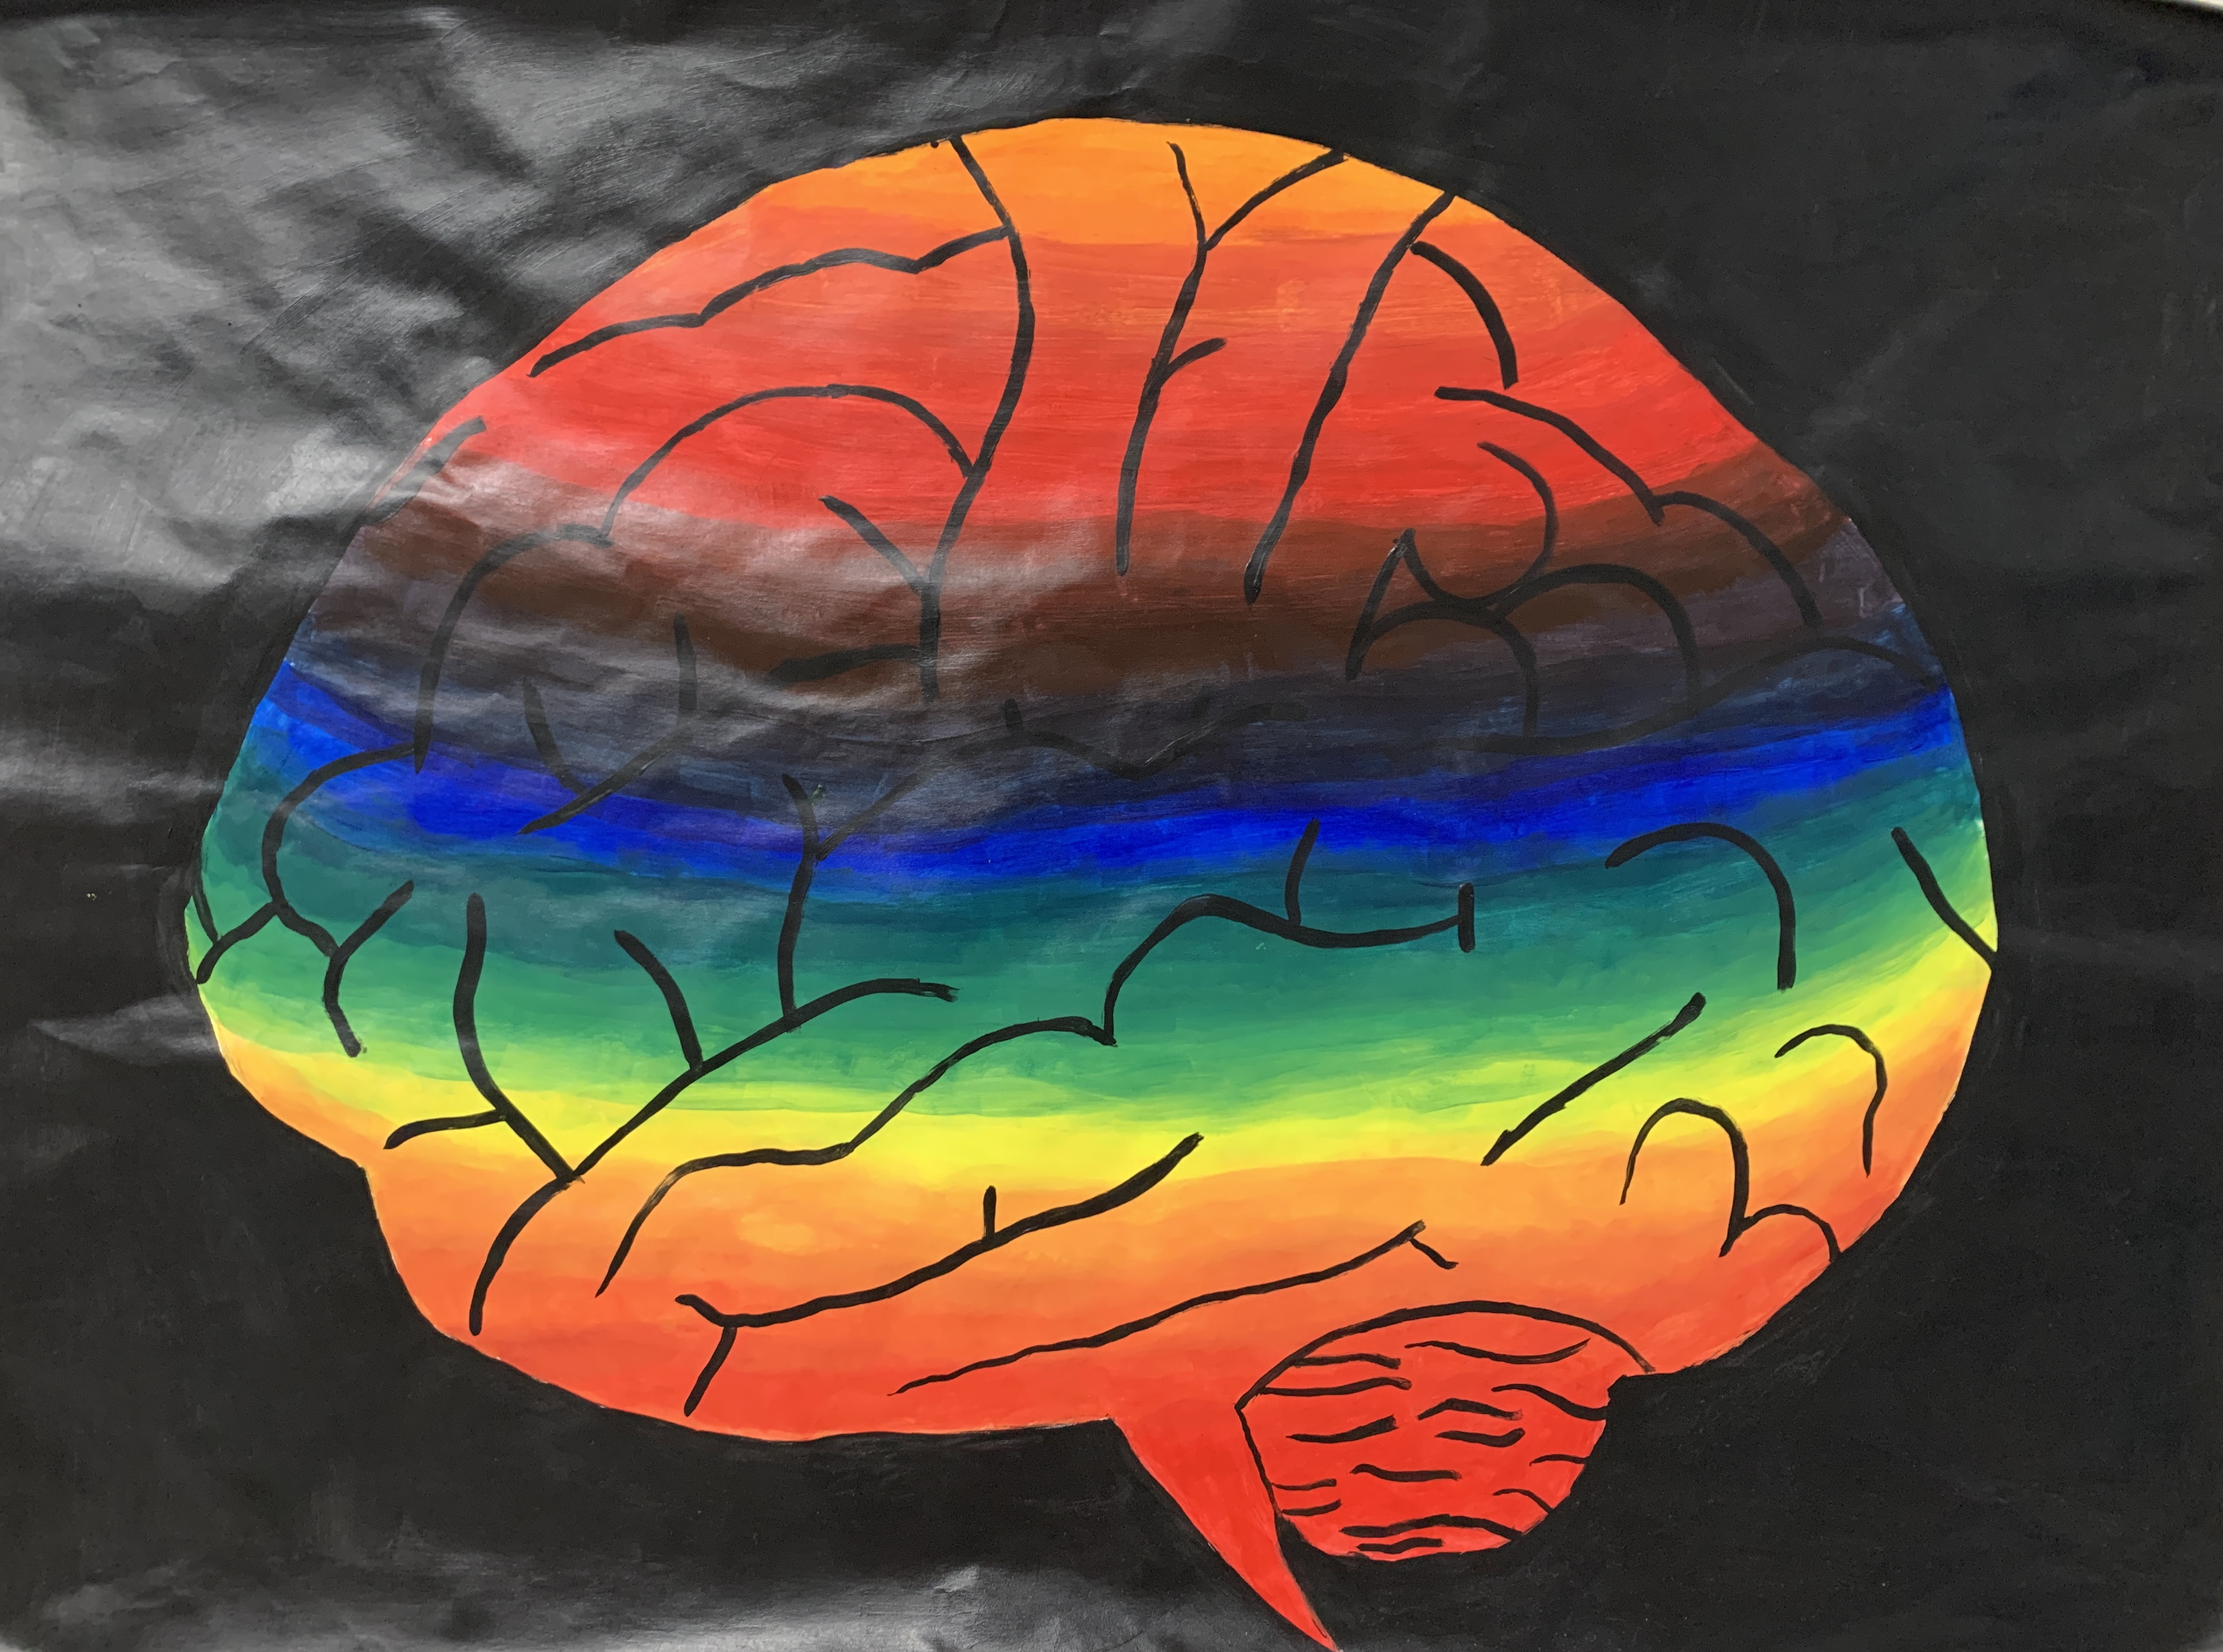 Student's color wheel project - a brain